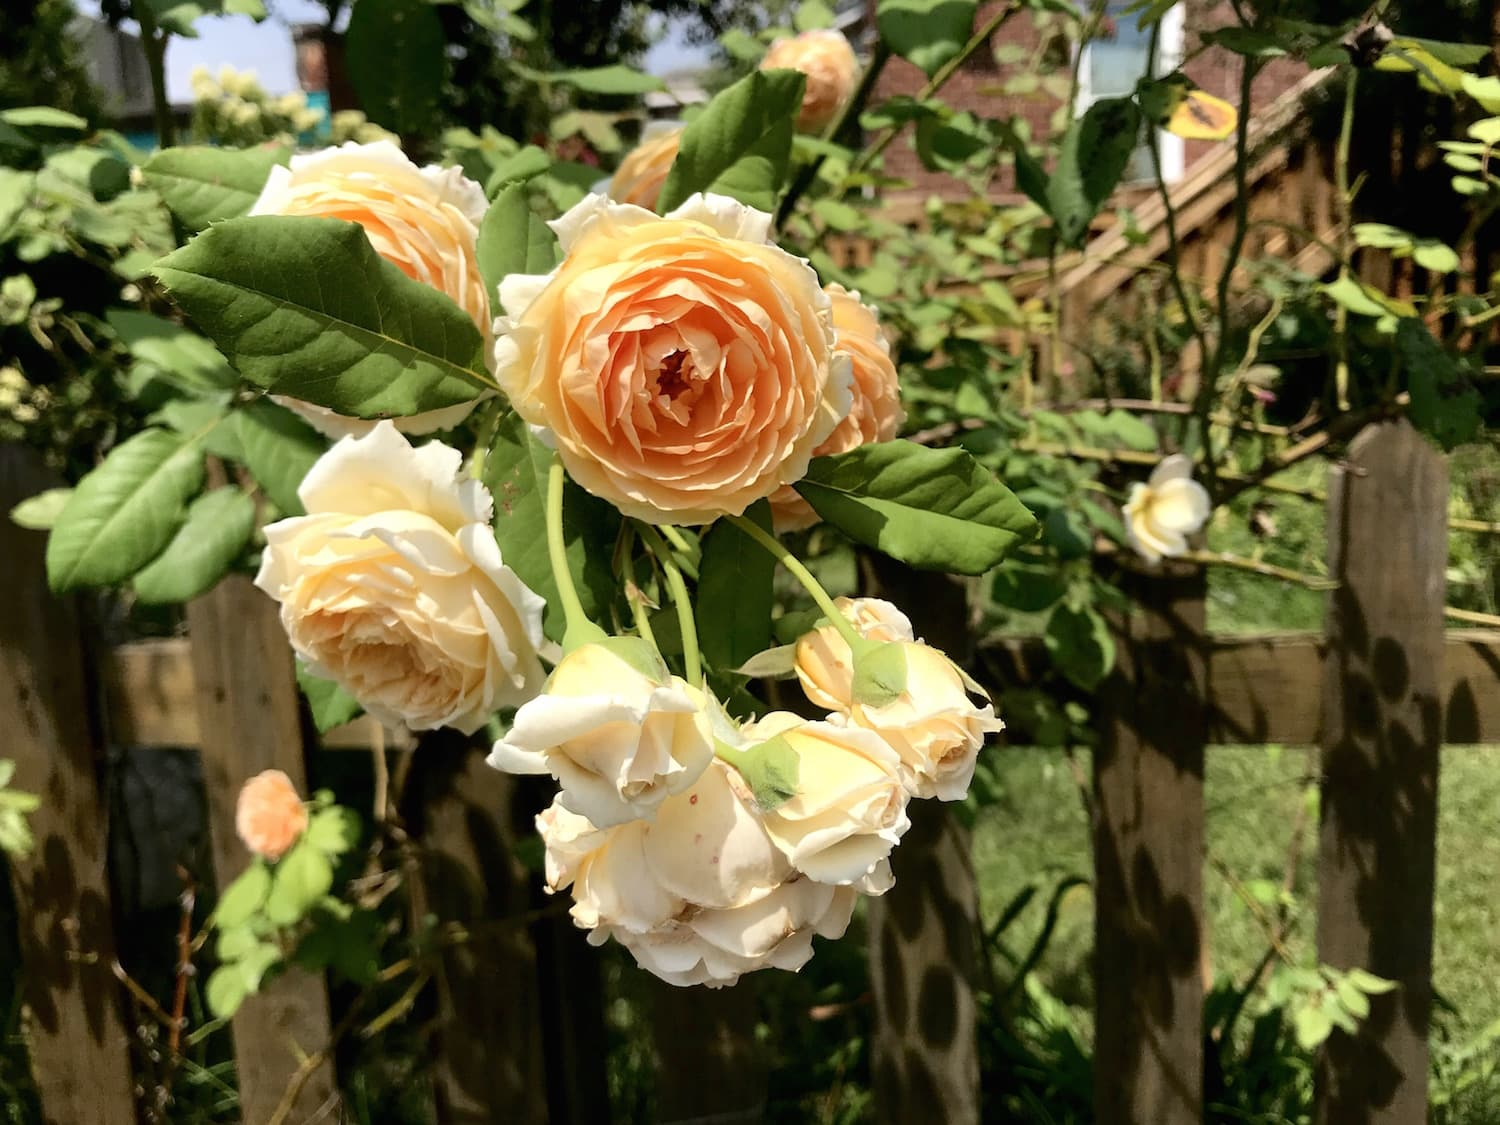 Ancient Beauty - Roses were probably the first flower to be cultivated for decorative purposes. Their images appear in art & architecture created during the Roman Empire, as well as even further back in Shang Dynasty China (circa 1400 B.C.E)